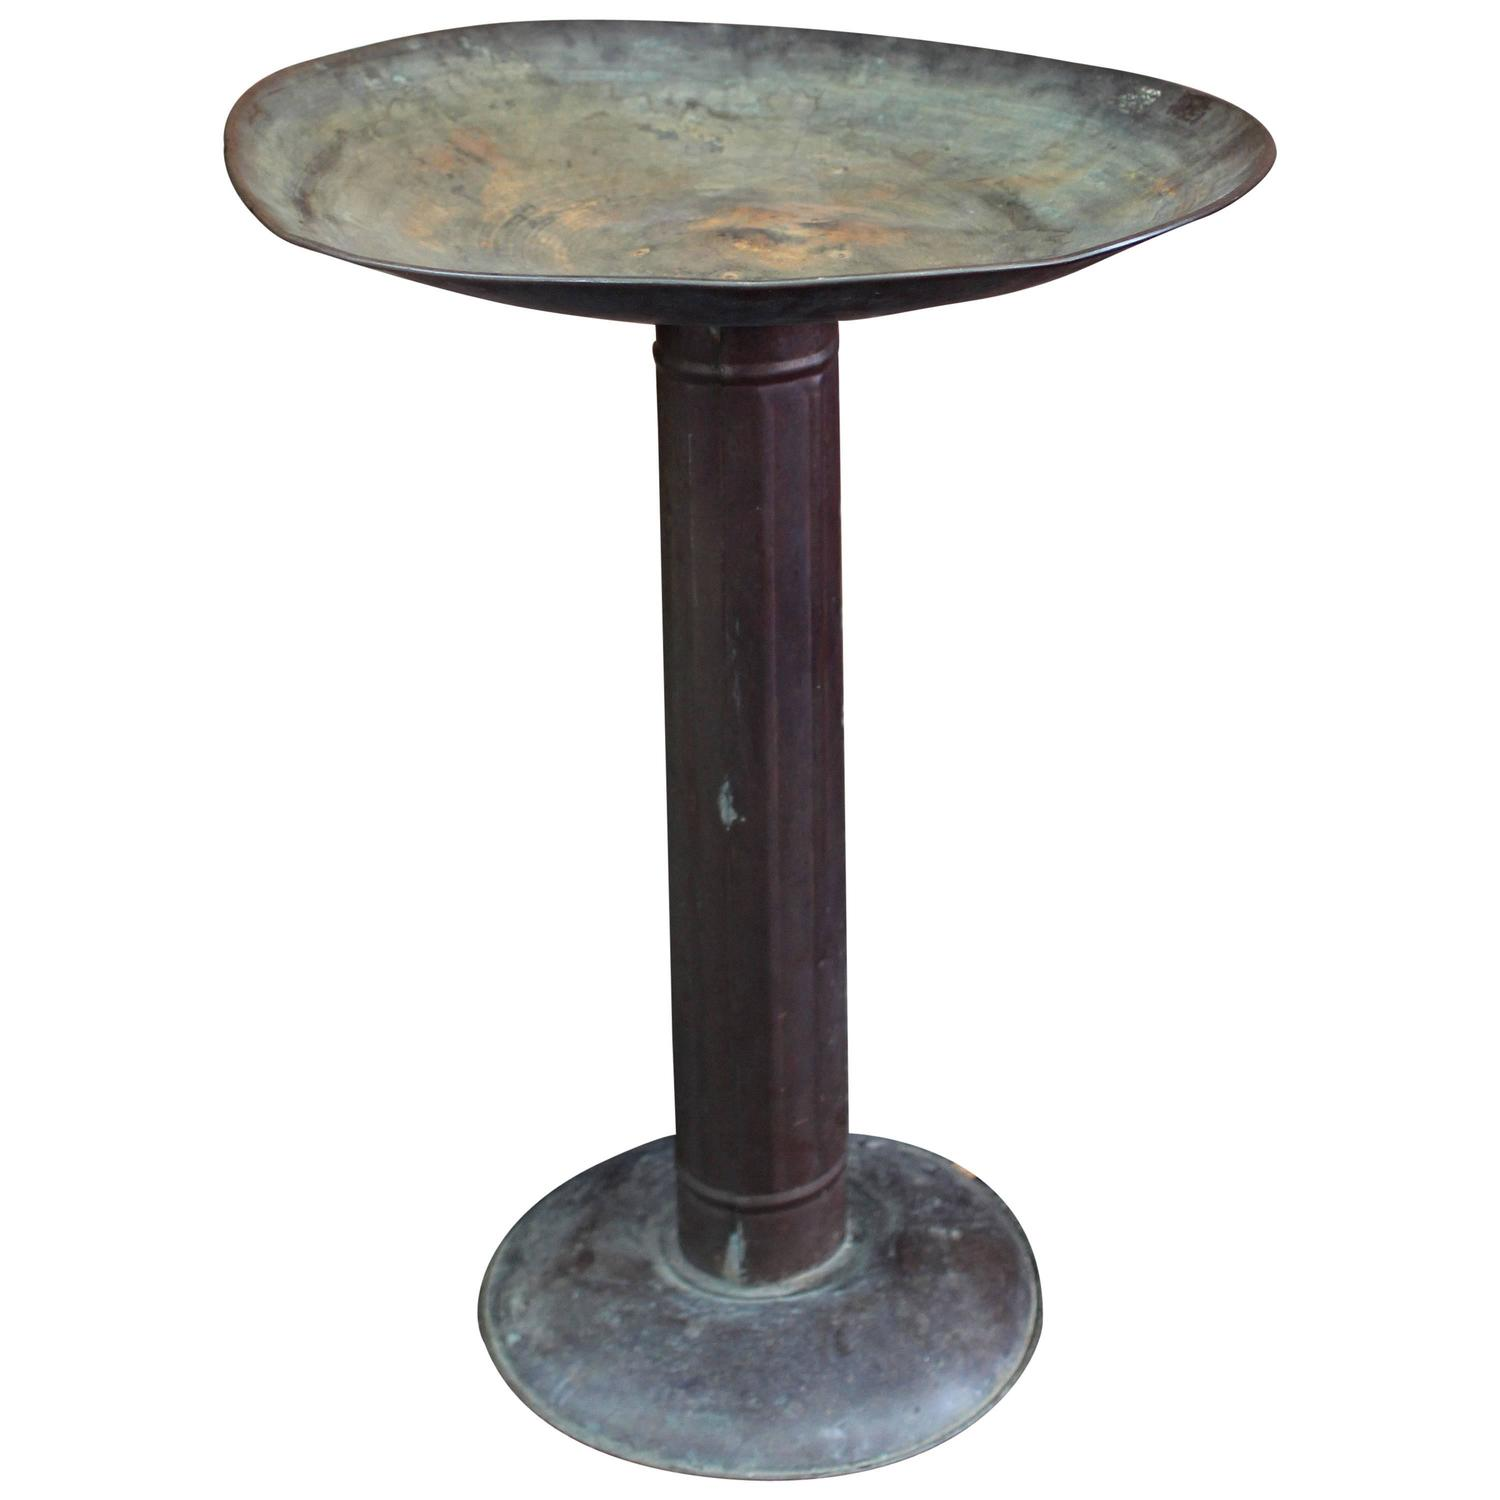 Vintage Copper Bird Bath For Sale At 1stdibs